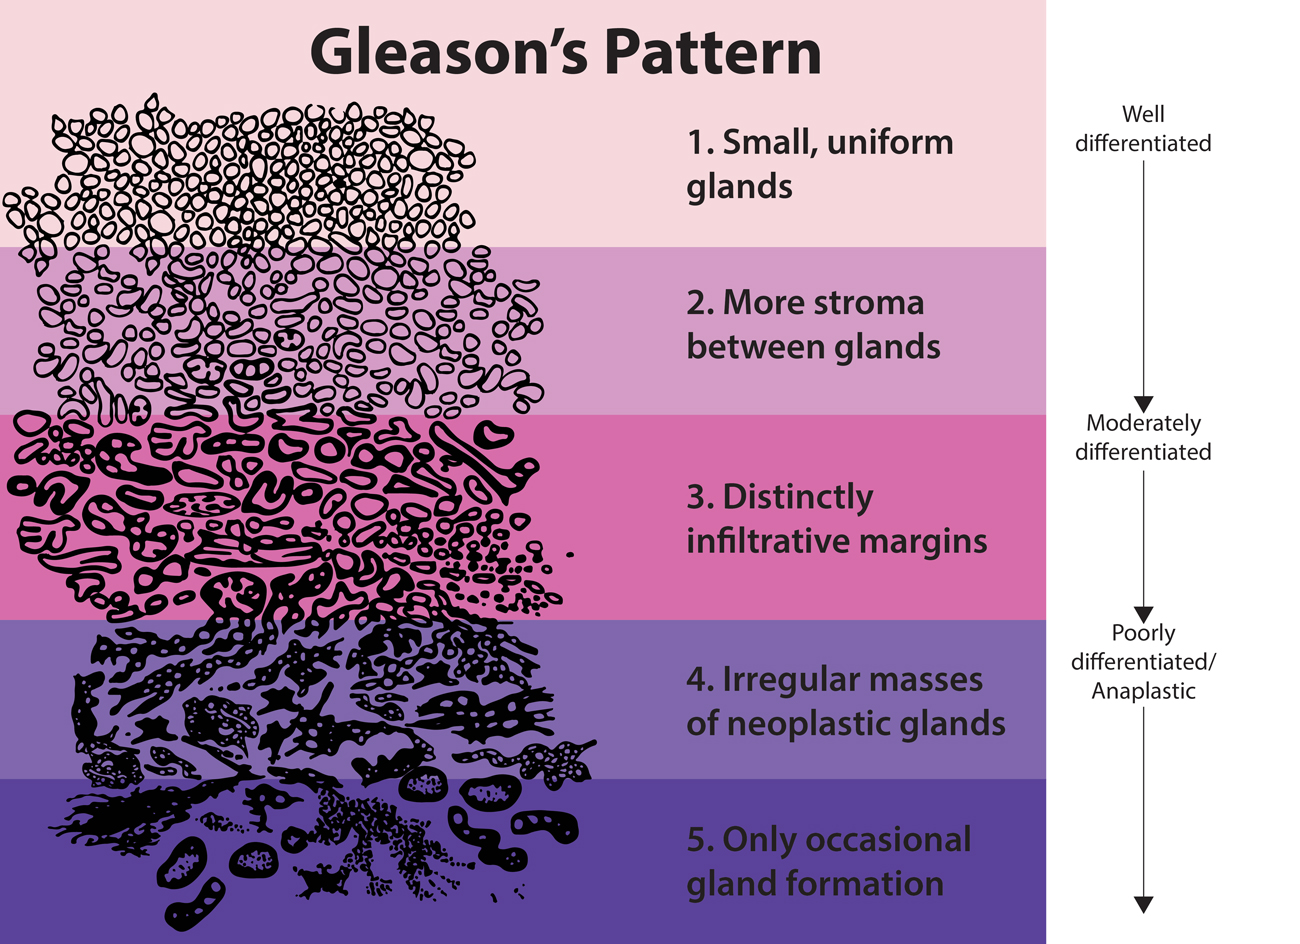 GLEASON'S PATTERN SHOWING INCREASING PRESENCE OF CANCER CELLS FROM TOP TO BOTTOM